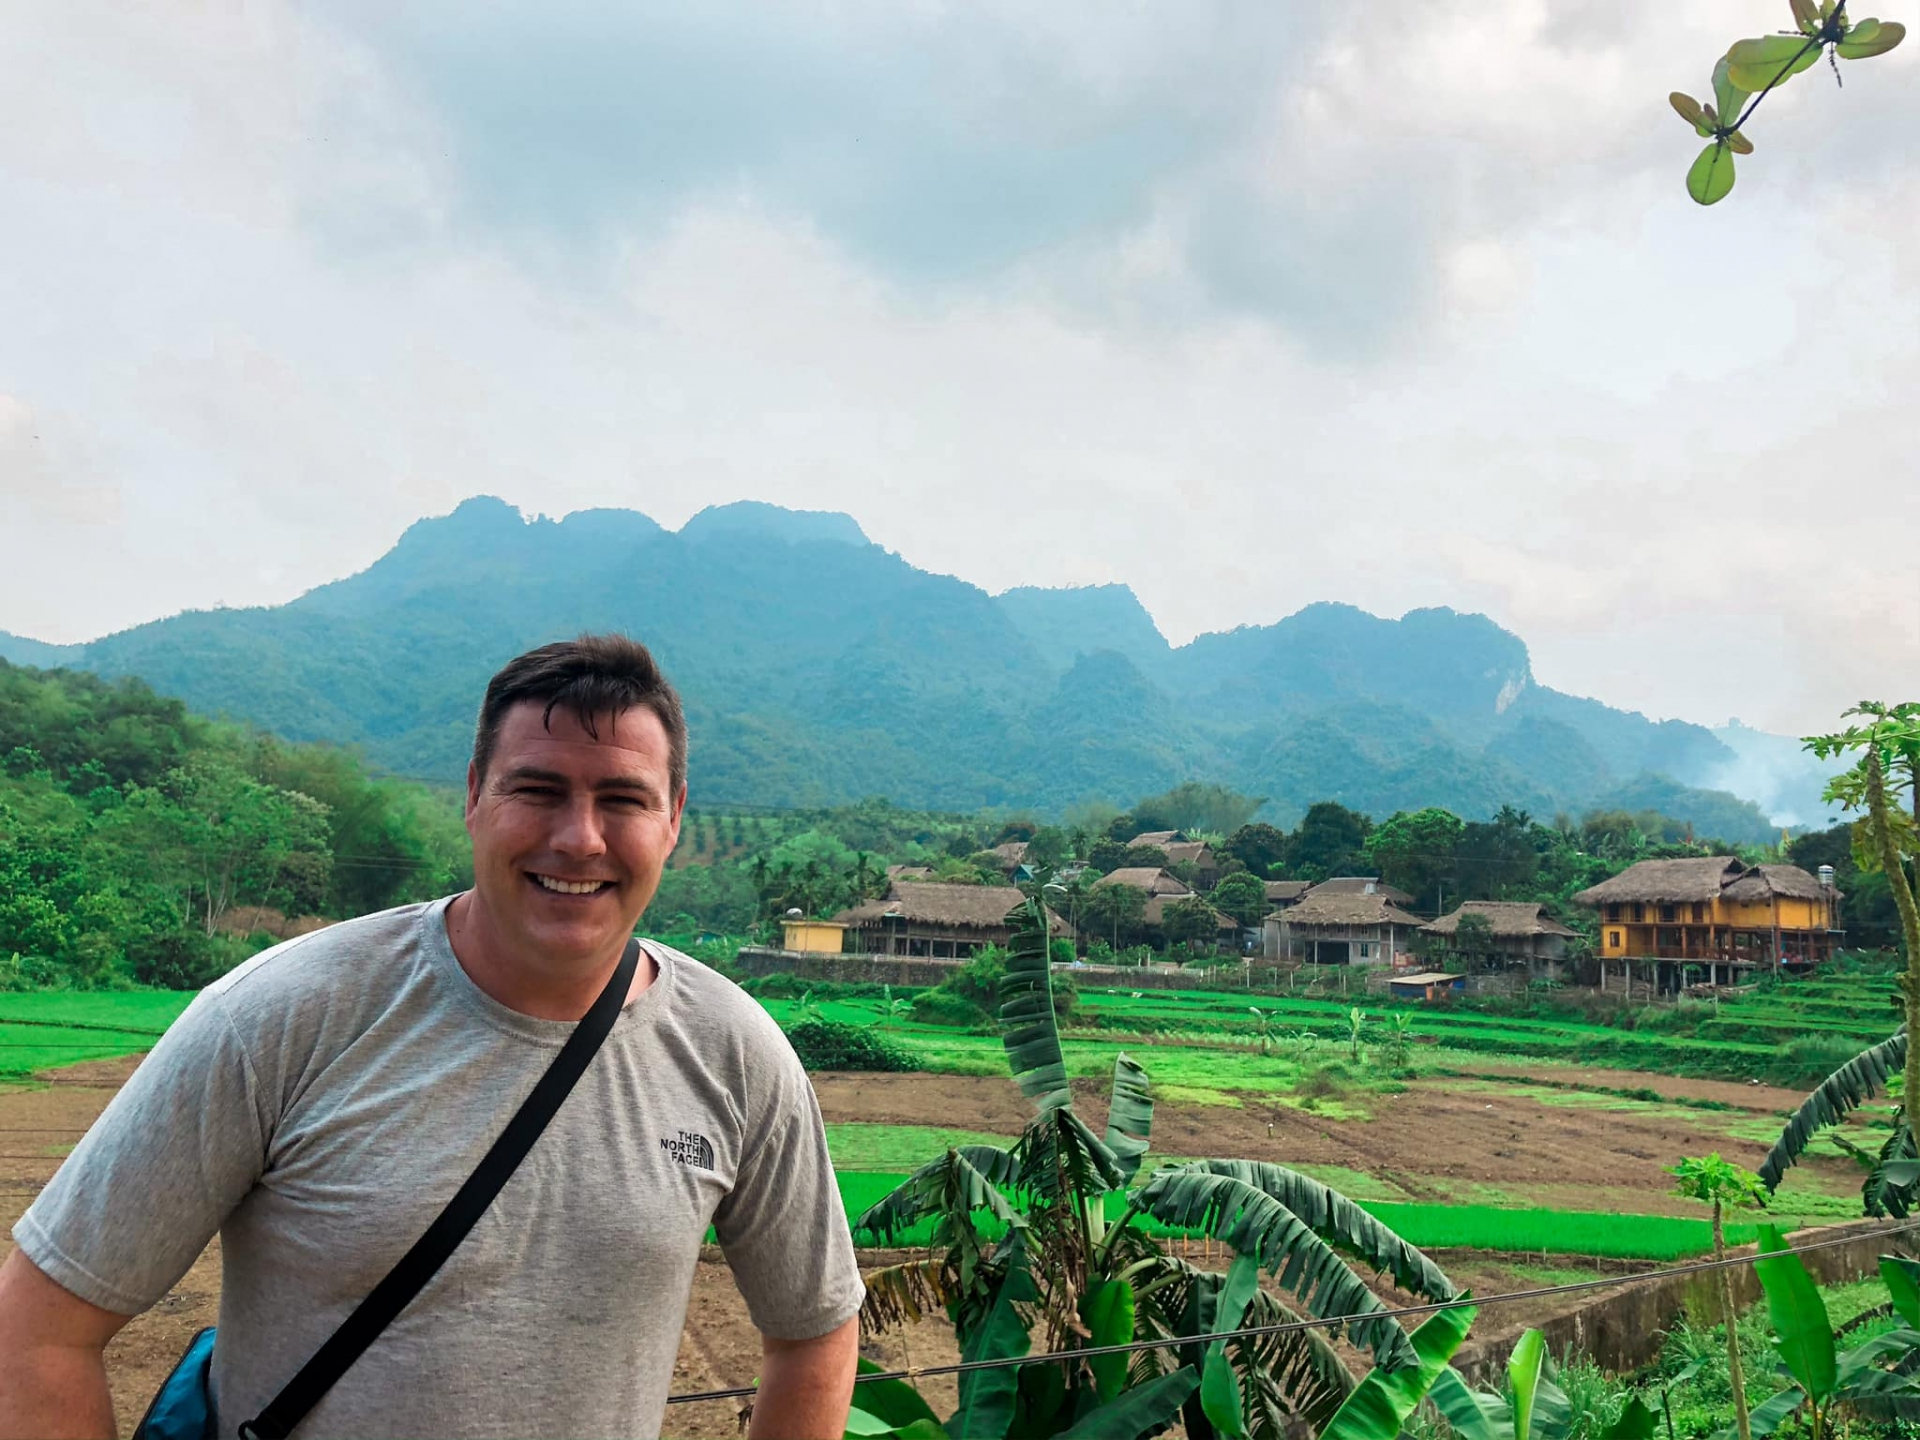 Edward luby has been working and living in vietnam for almost 3 years (photo courtesy of edward luby)